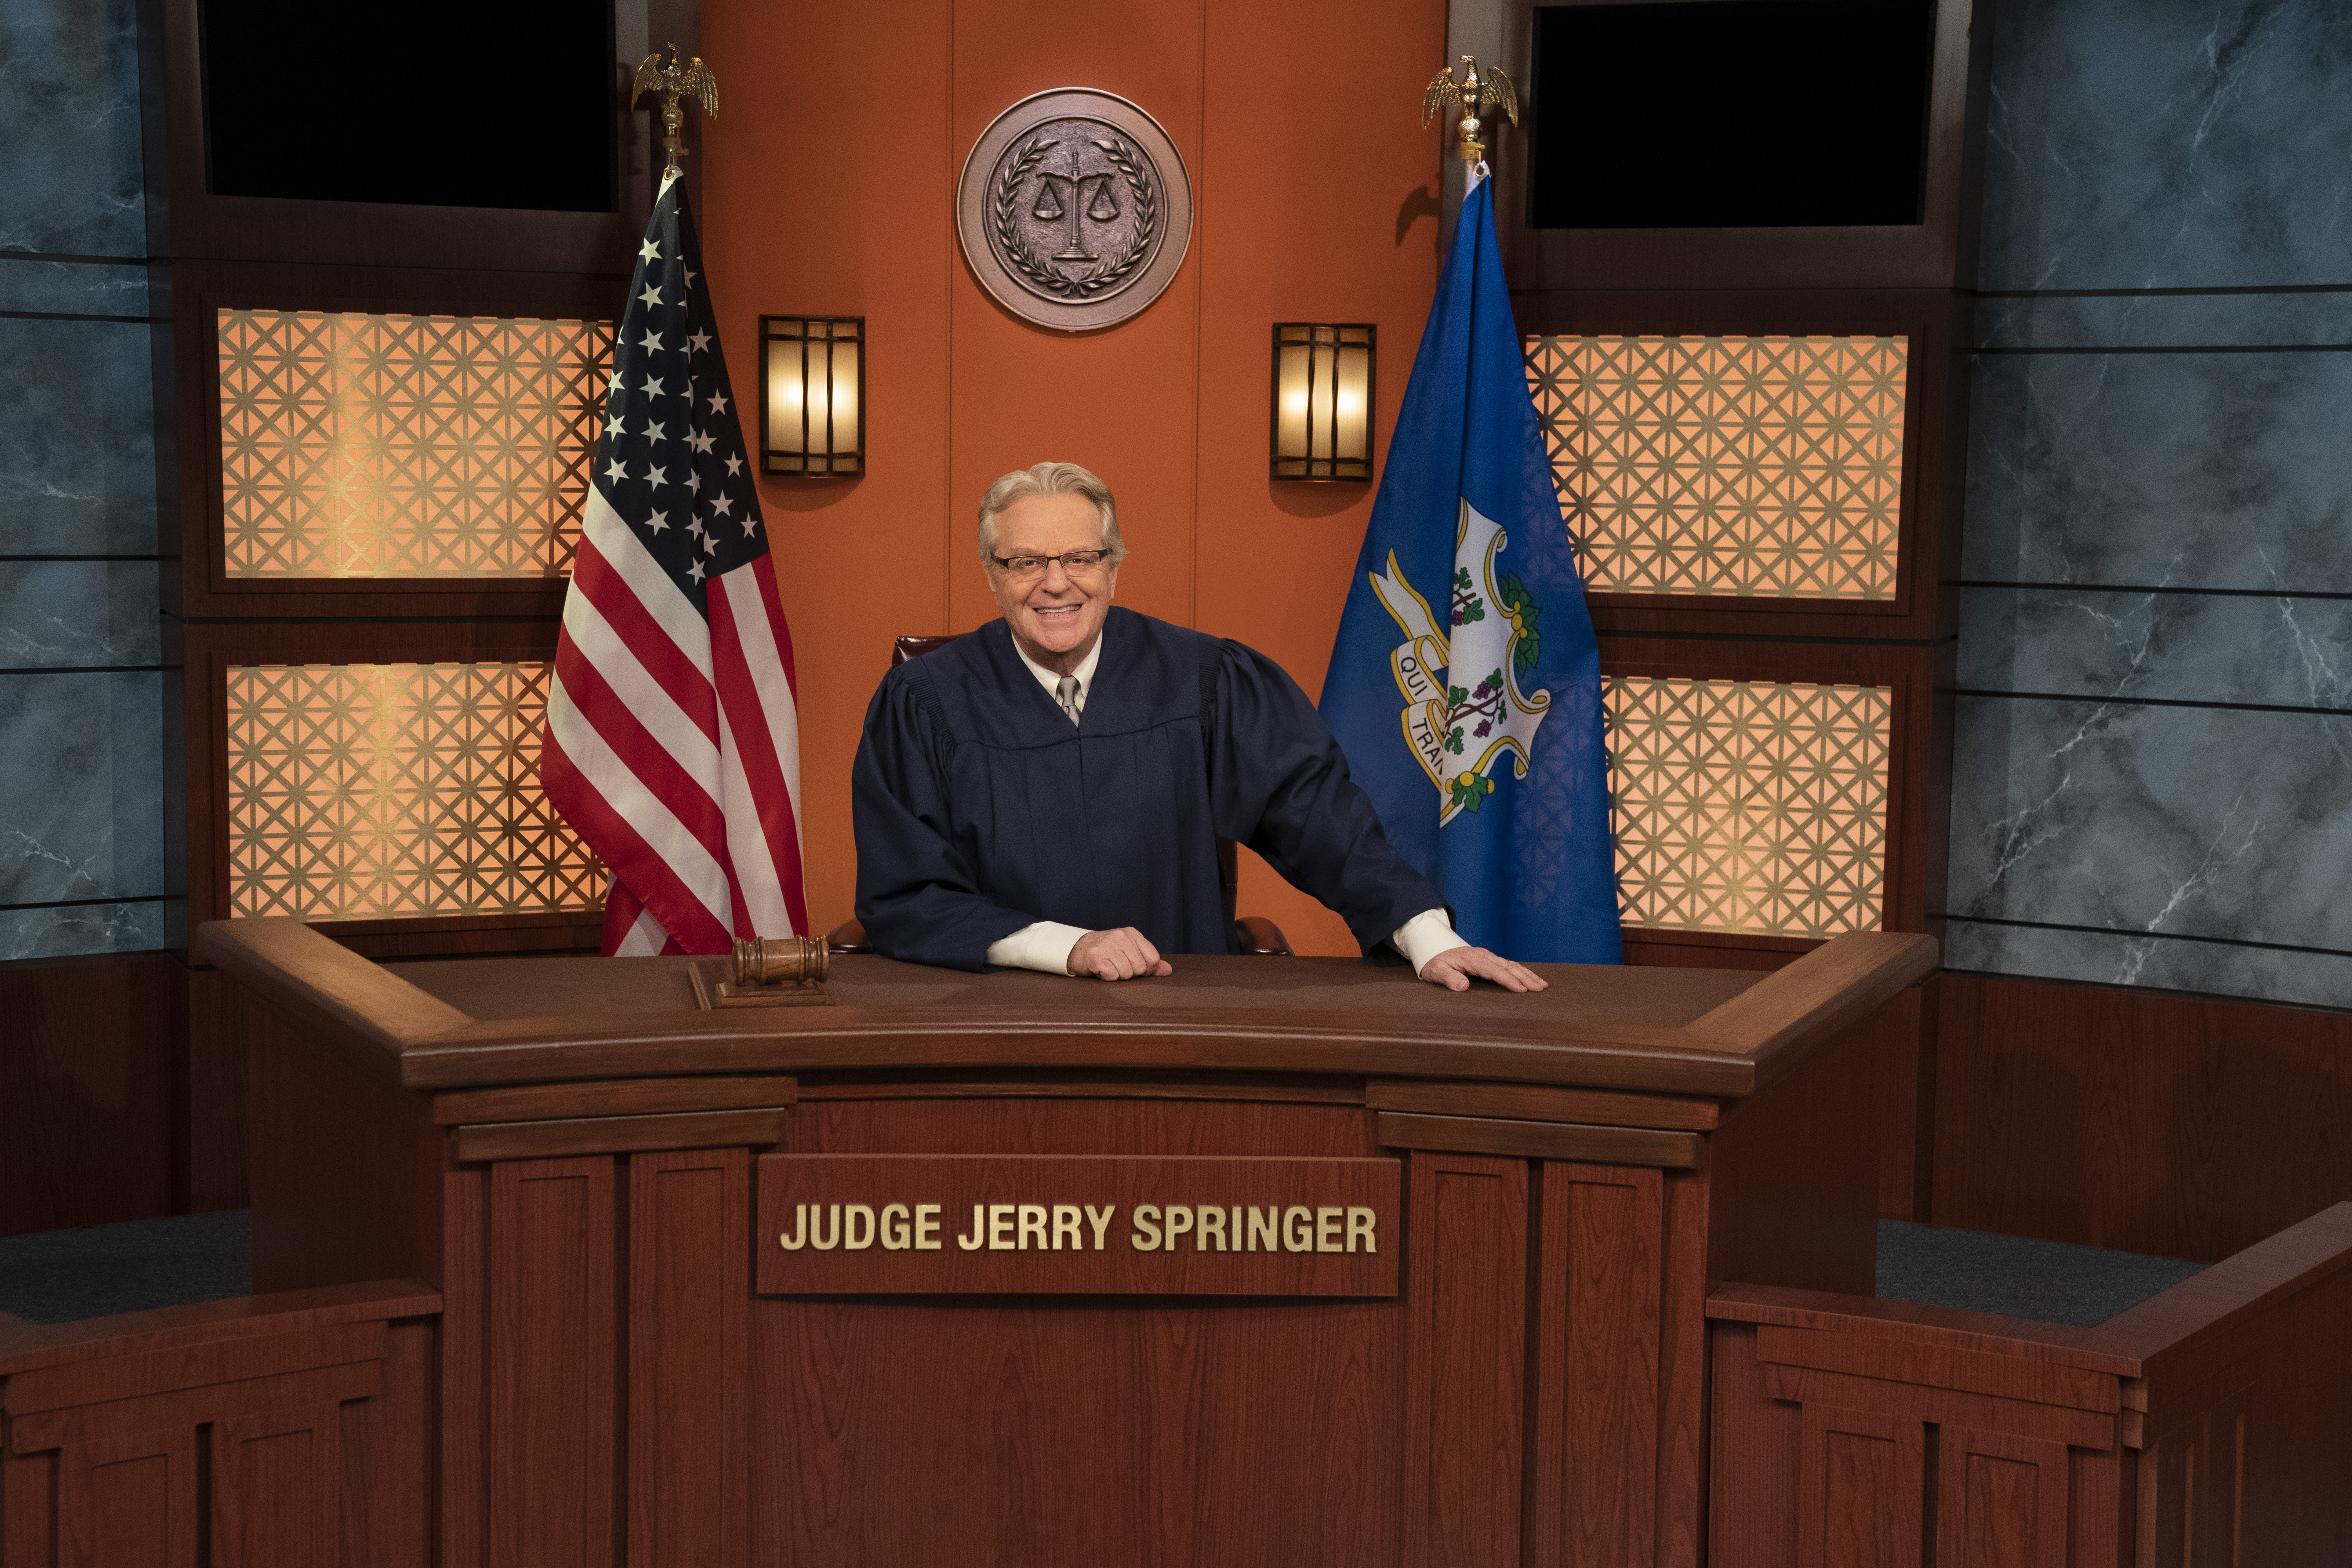 Why TV judge Jerry Springer supports court-packing: Its important to have a Supreme Court that recognizes Americas values